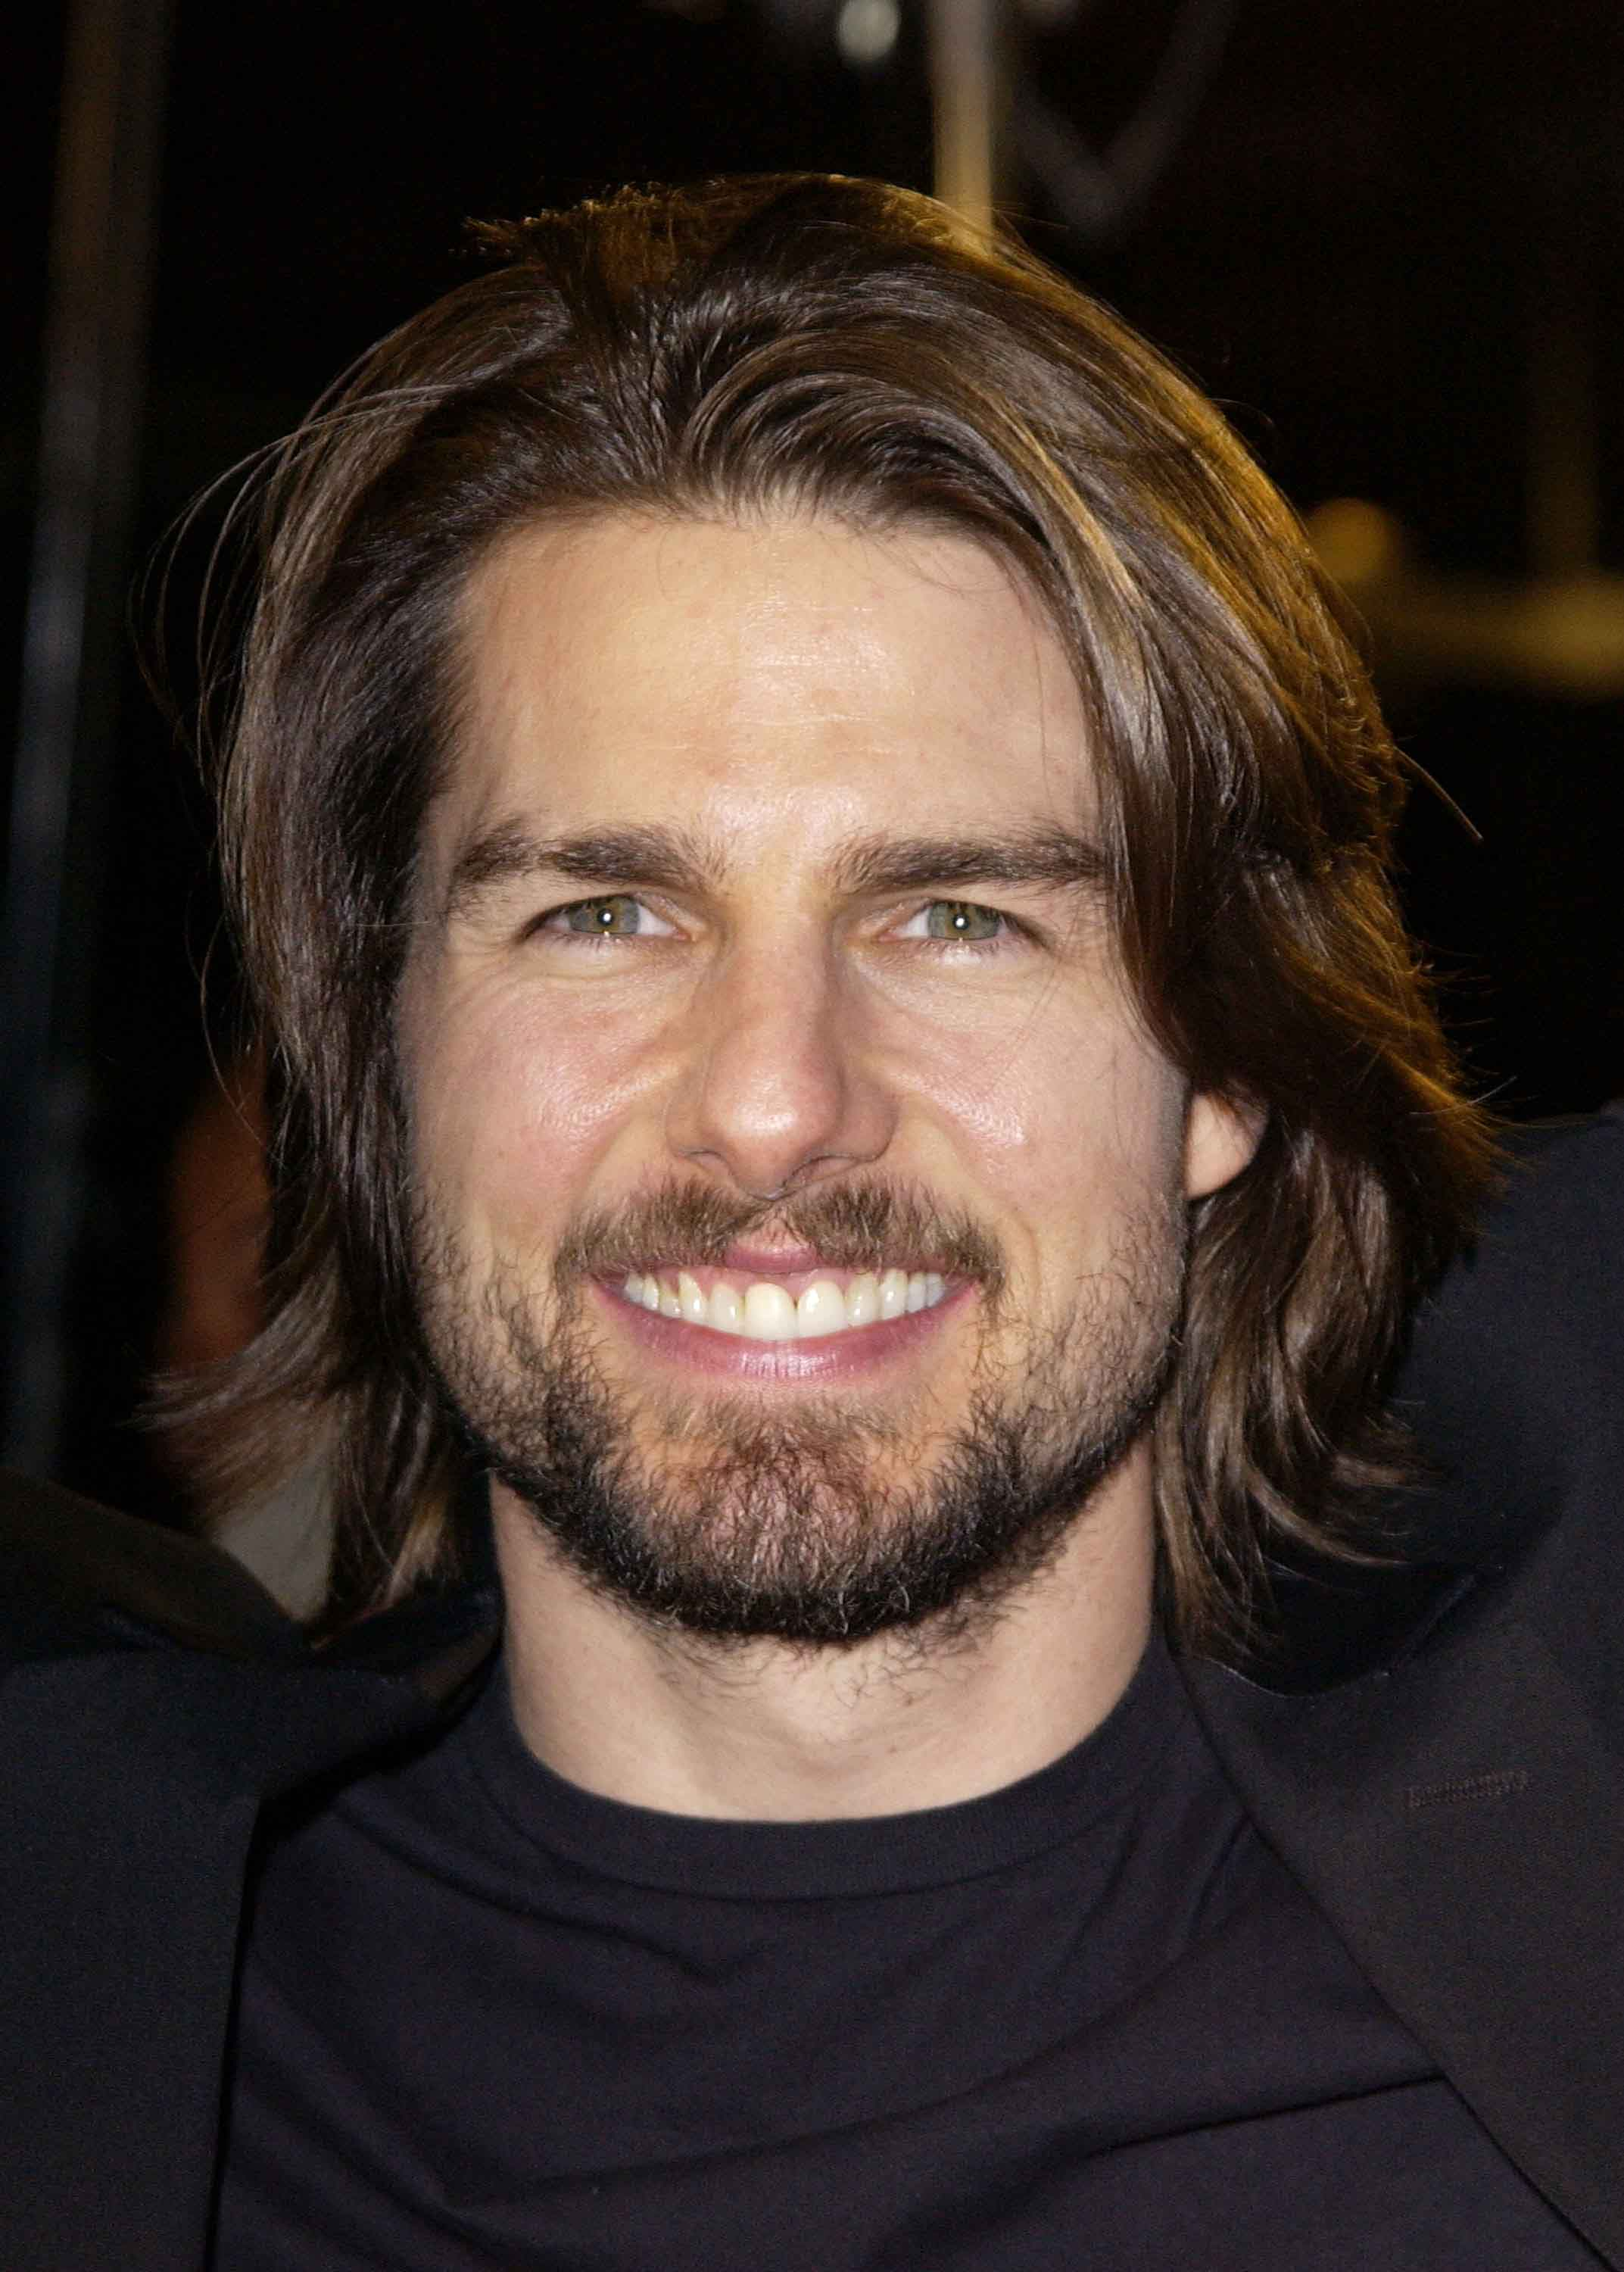 Guys with long hair: All Things Hair - IMAGE - Tom Cruise